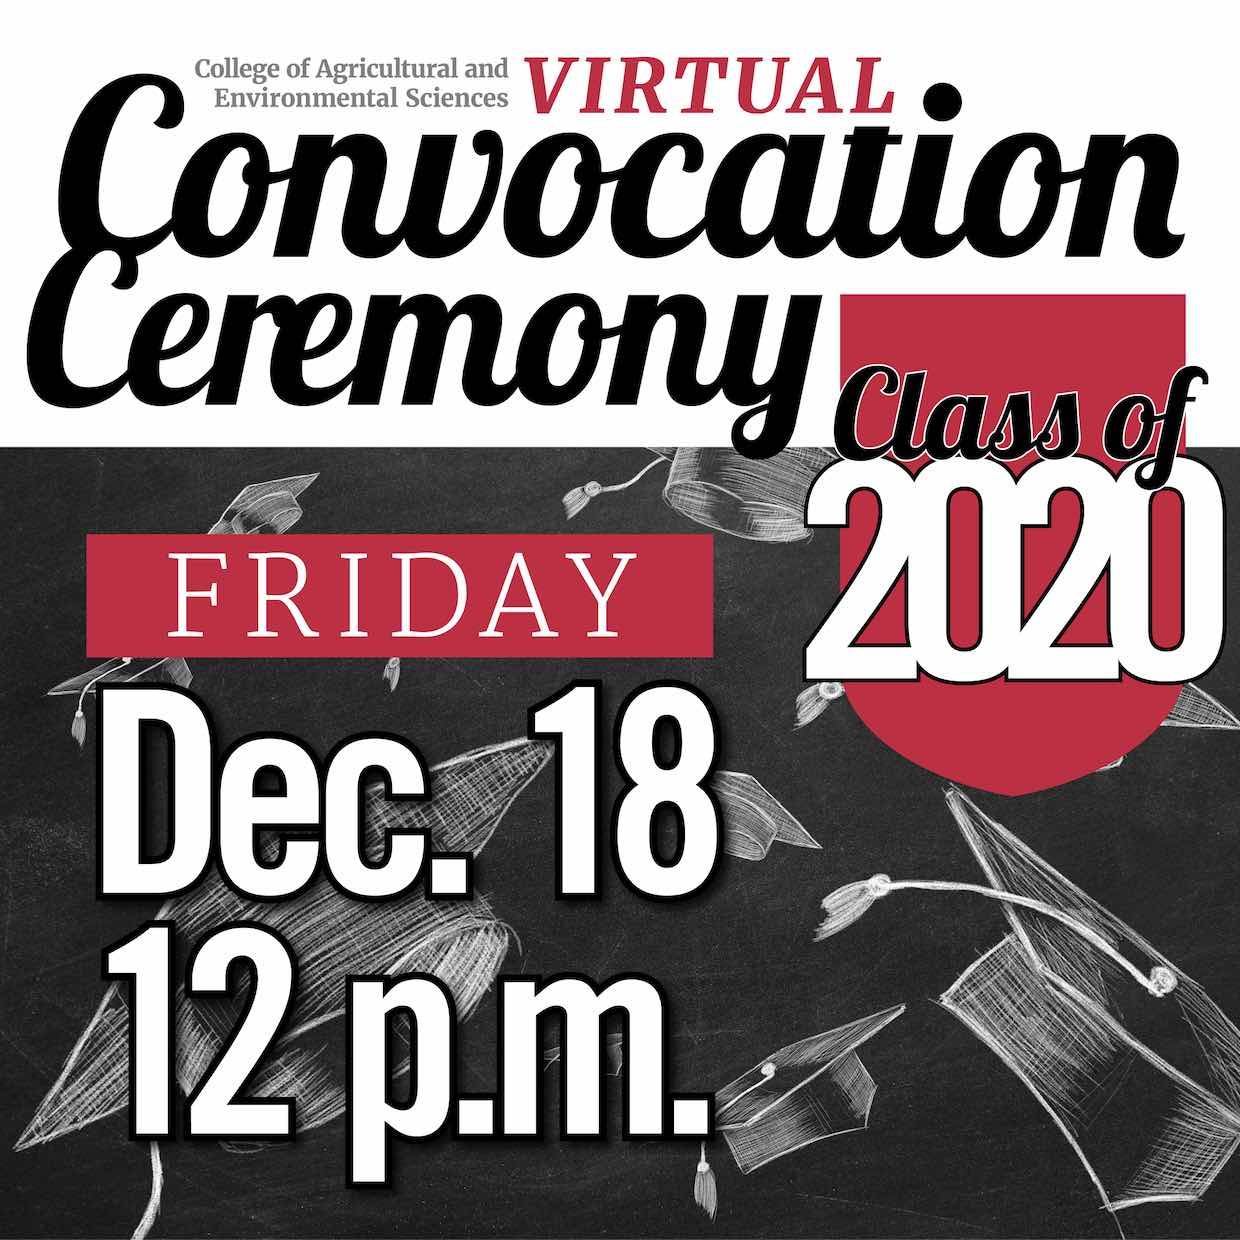 The UGA College of Agricultural and Environmental Sciences will hold a virtual convocation ceremony at noon on Friday, Dec. 18, to celebrate new graduates.